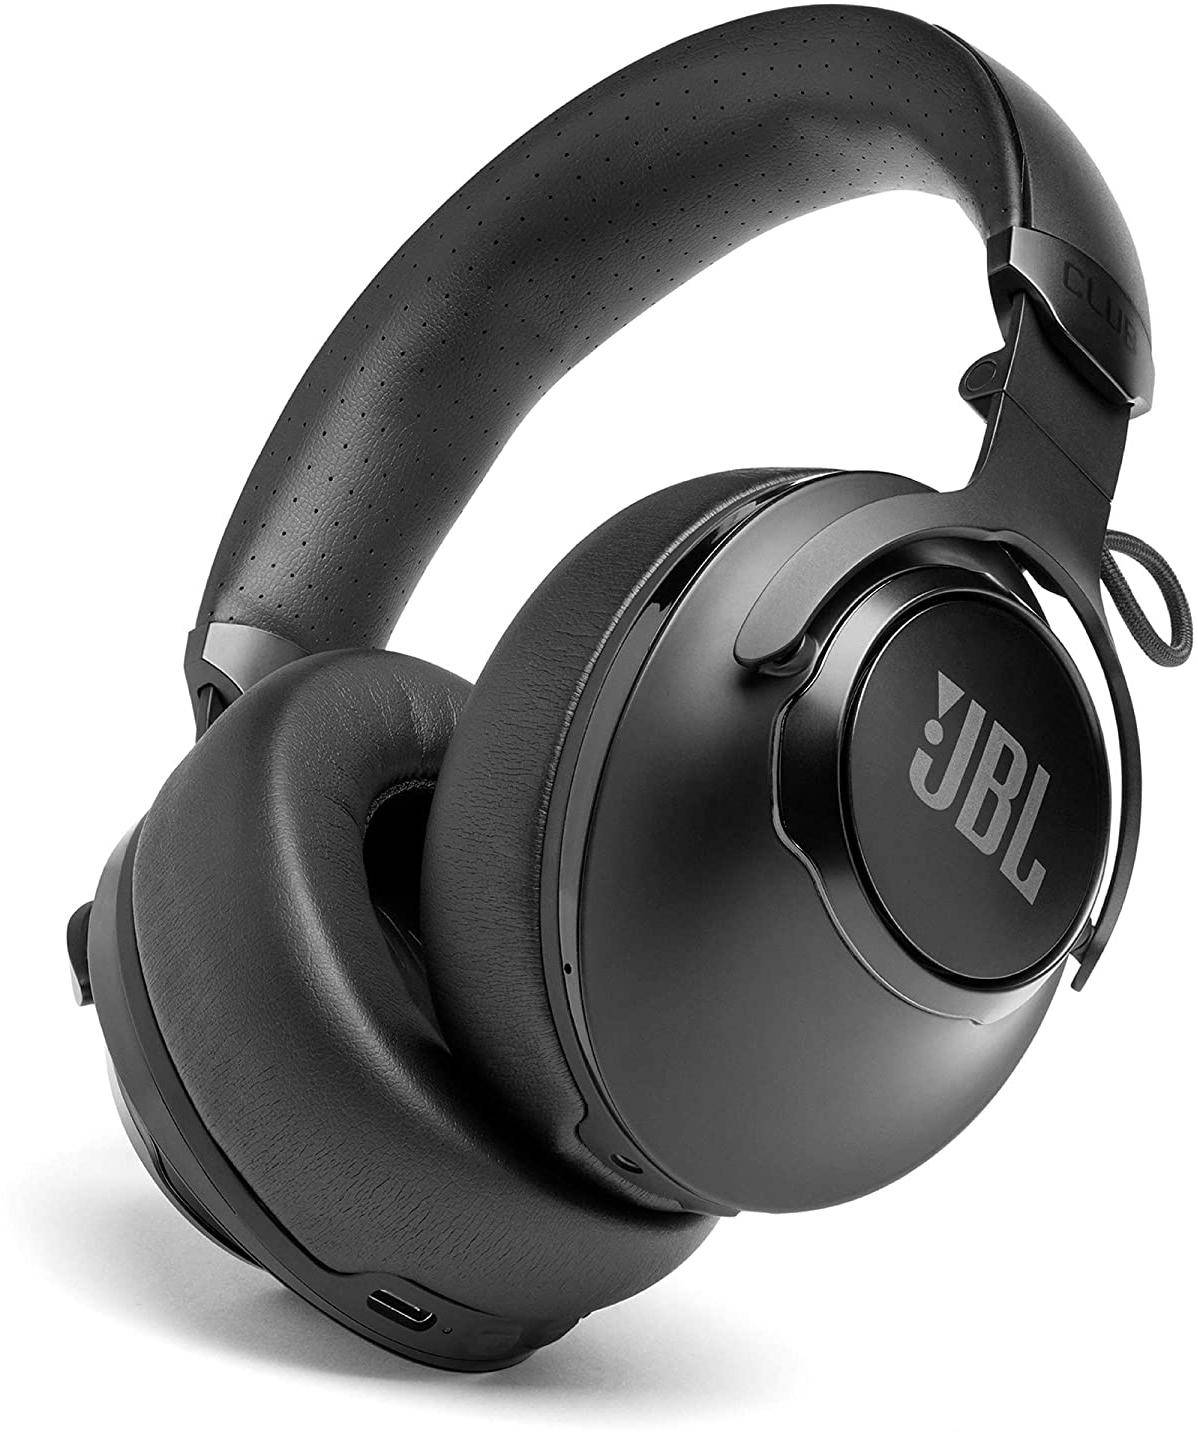 JBL Club 950NC Wireless Over The Ear Noise Cancelling Headphones zoom image